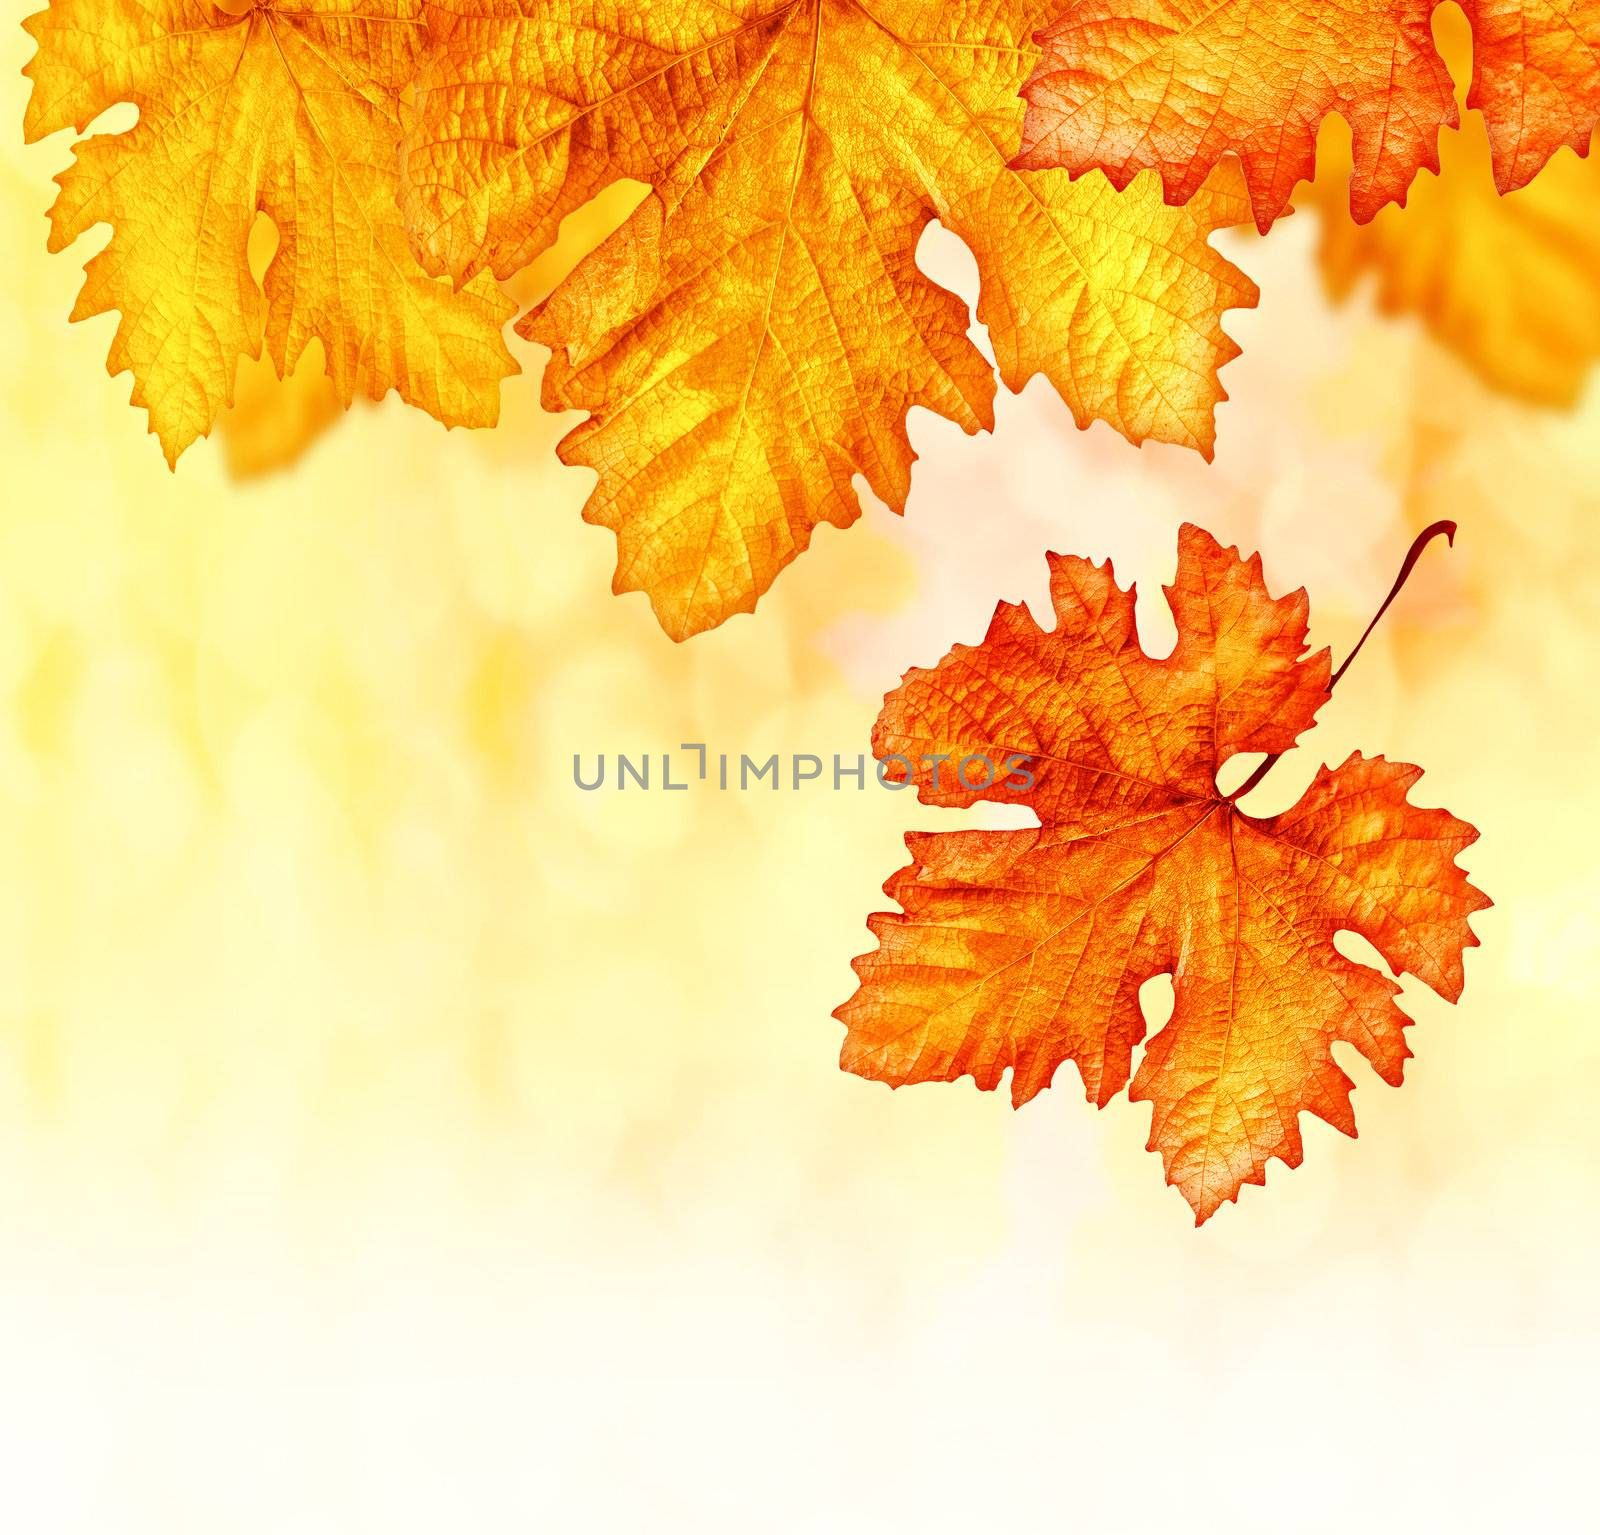 Abstract autumn background, orange autumnal backdrop, dry leaves border, old golden plants decoration, yellow foliage outdoor in october, autumn seasonal concept, brown flora textured wallpaper